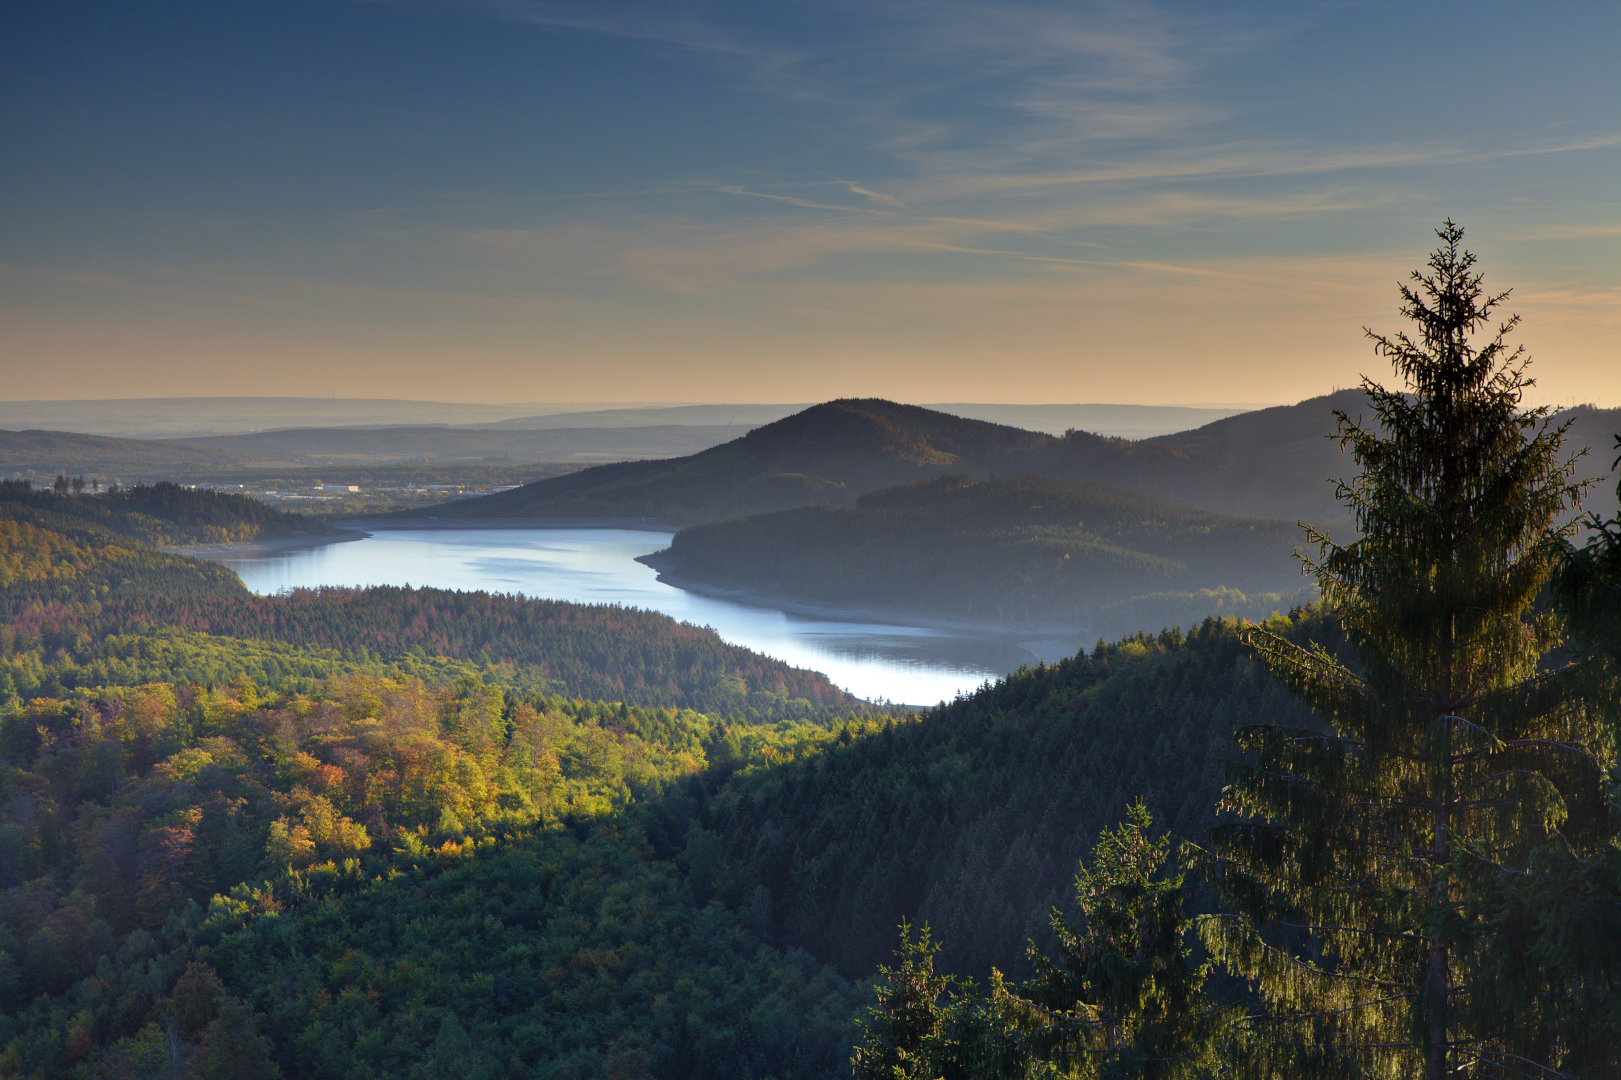 View from Borberg towards Granetalsperre, Germany